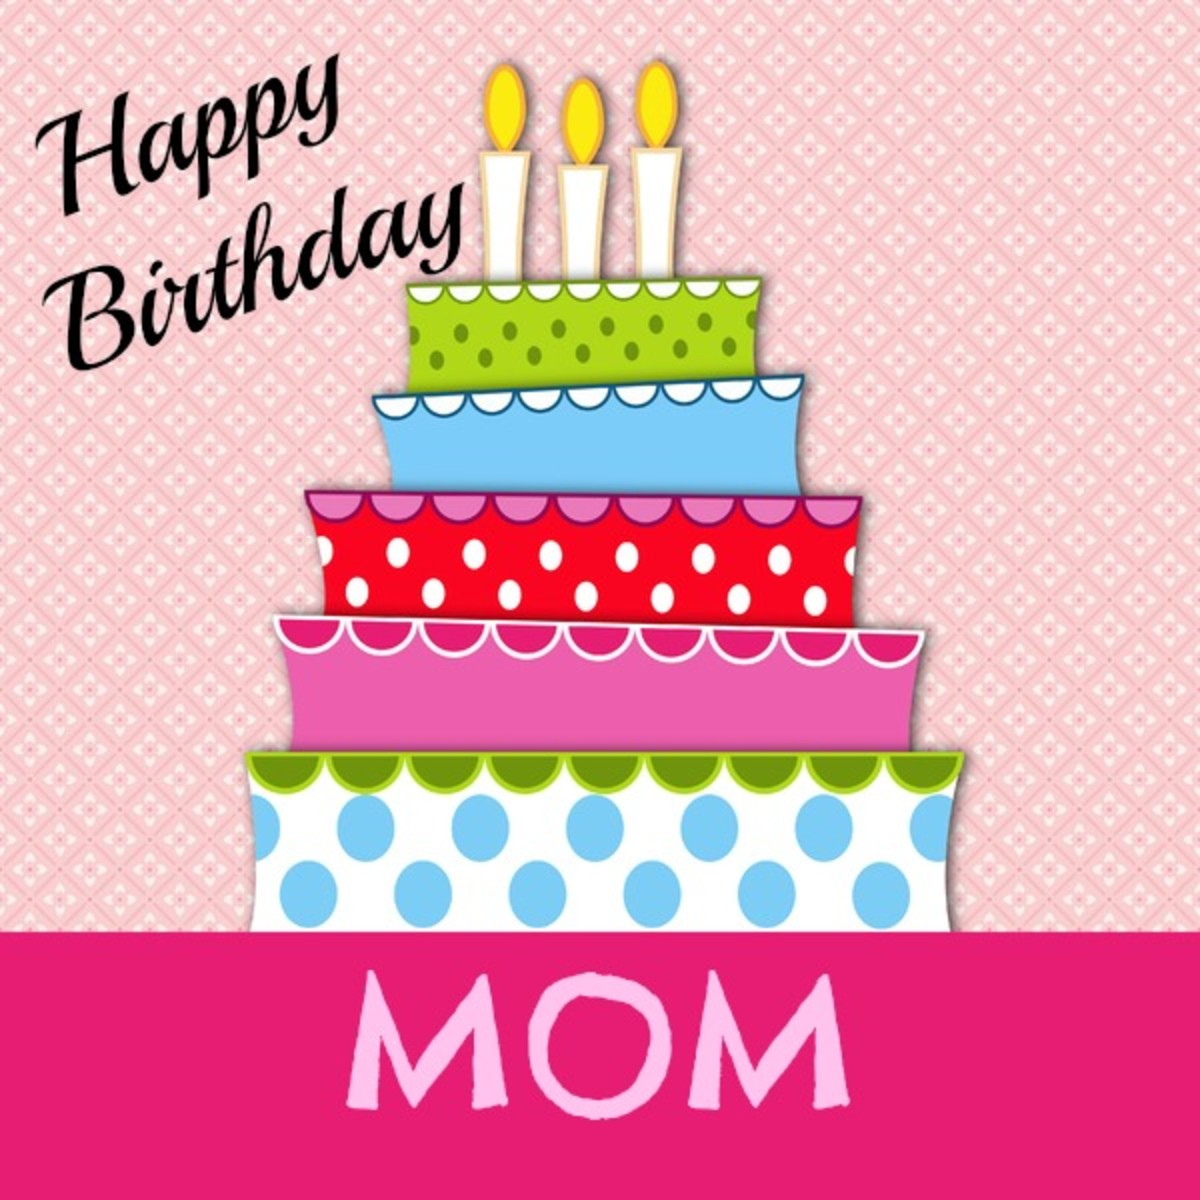 HAPPY BIRTHDAY MOM Birthday Wishes for Mom – Happy Birthday Greetings for Mom